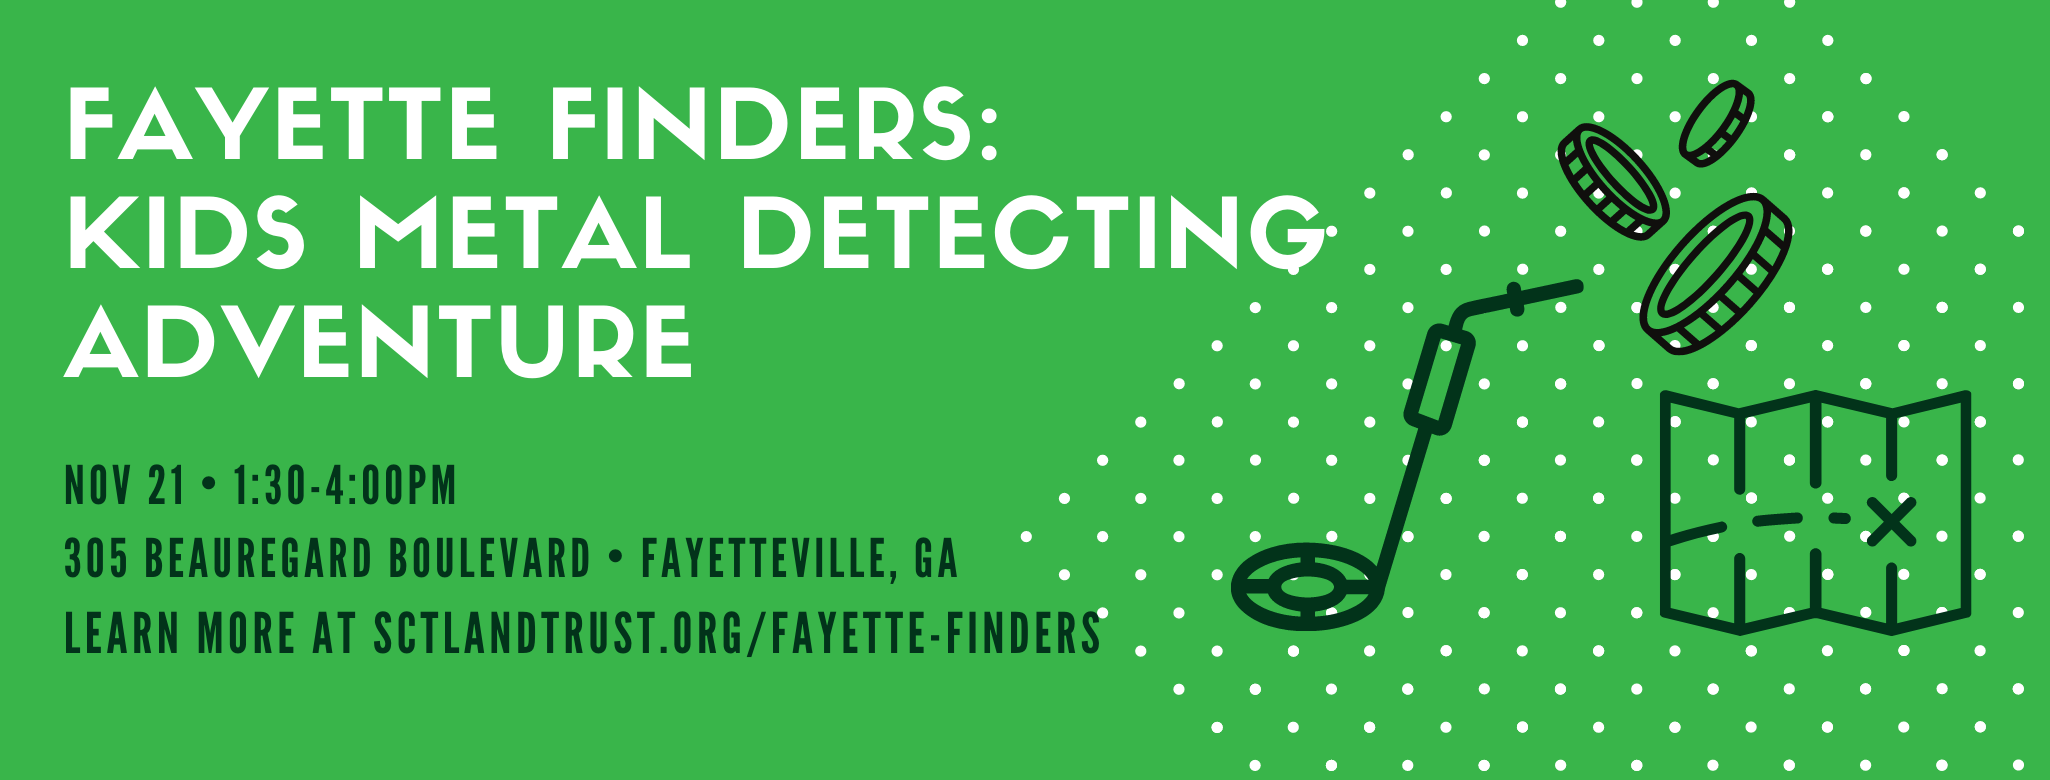 Fayette Finders: Kids Metal Detecting Adventure @ Southern Conservation Trust